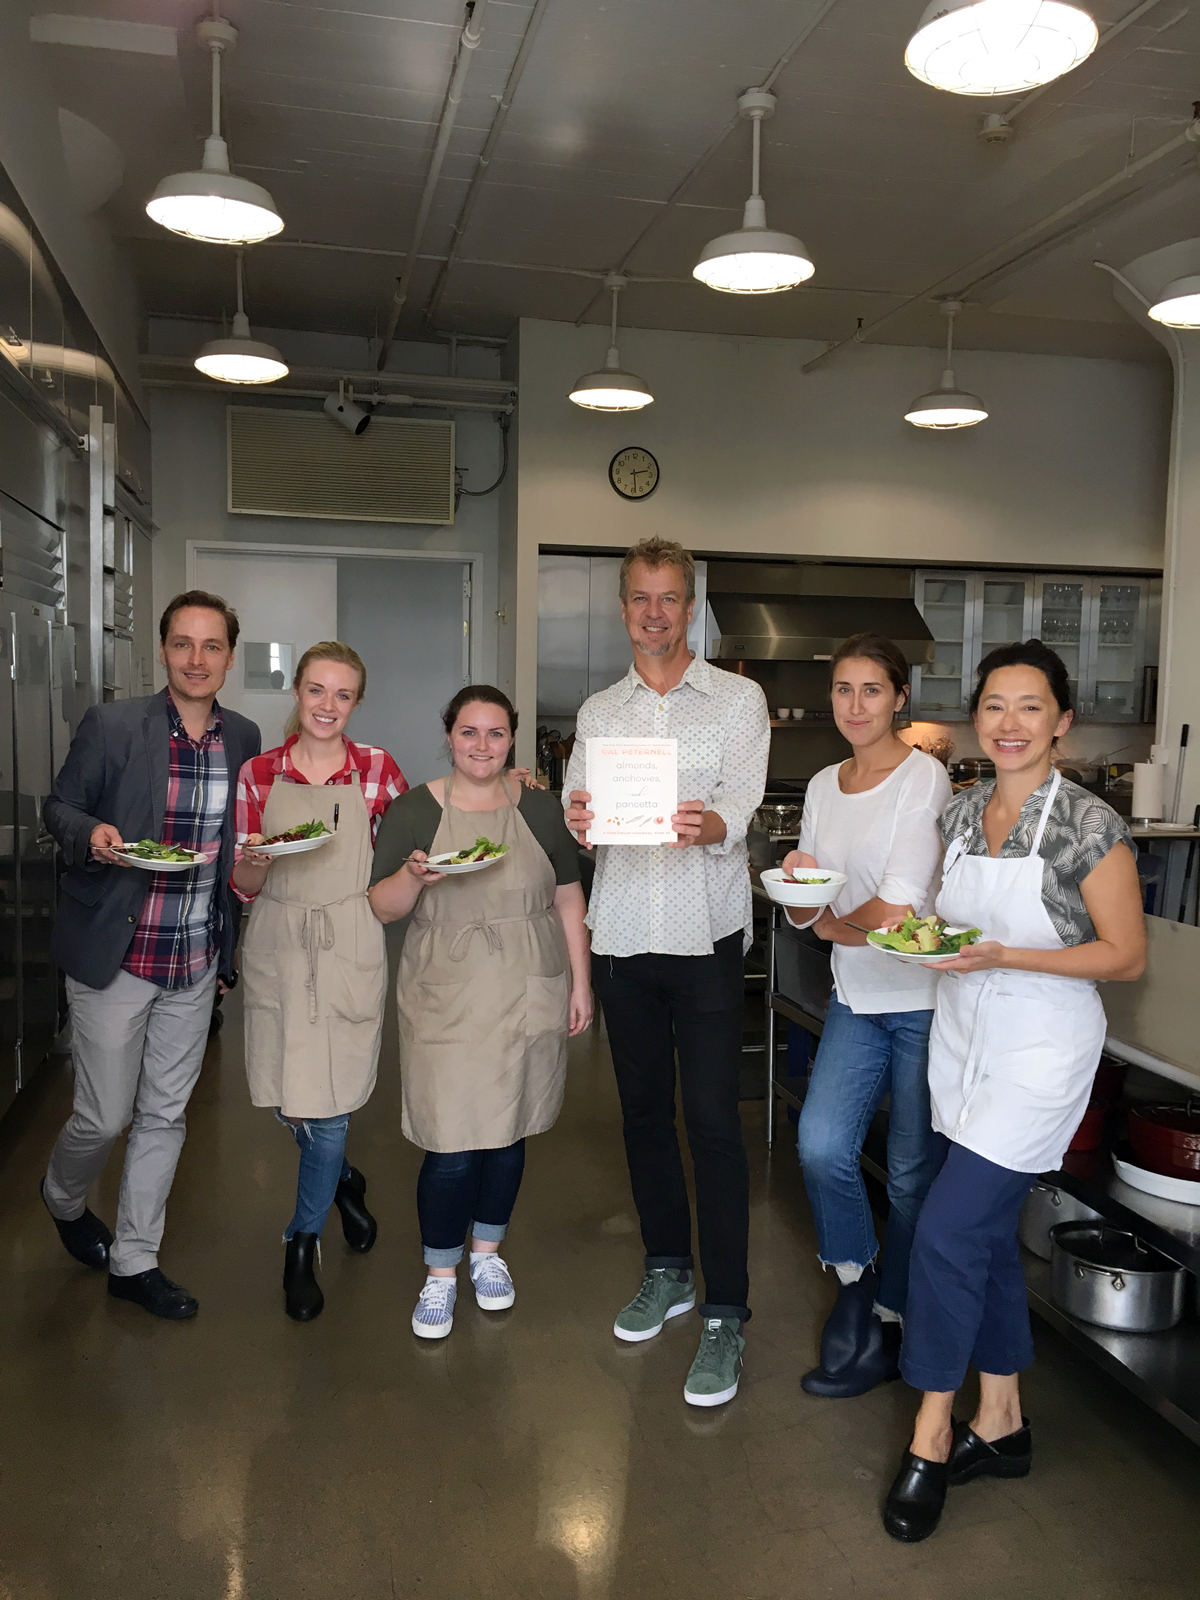 cal peternell with cooking class students